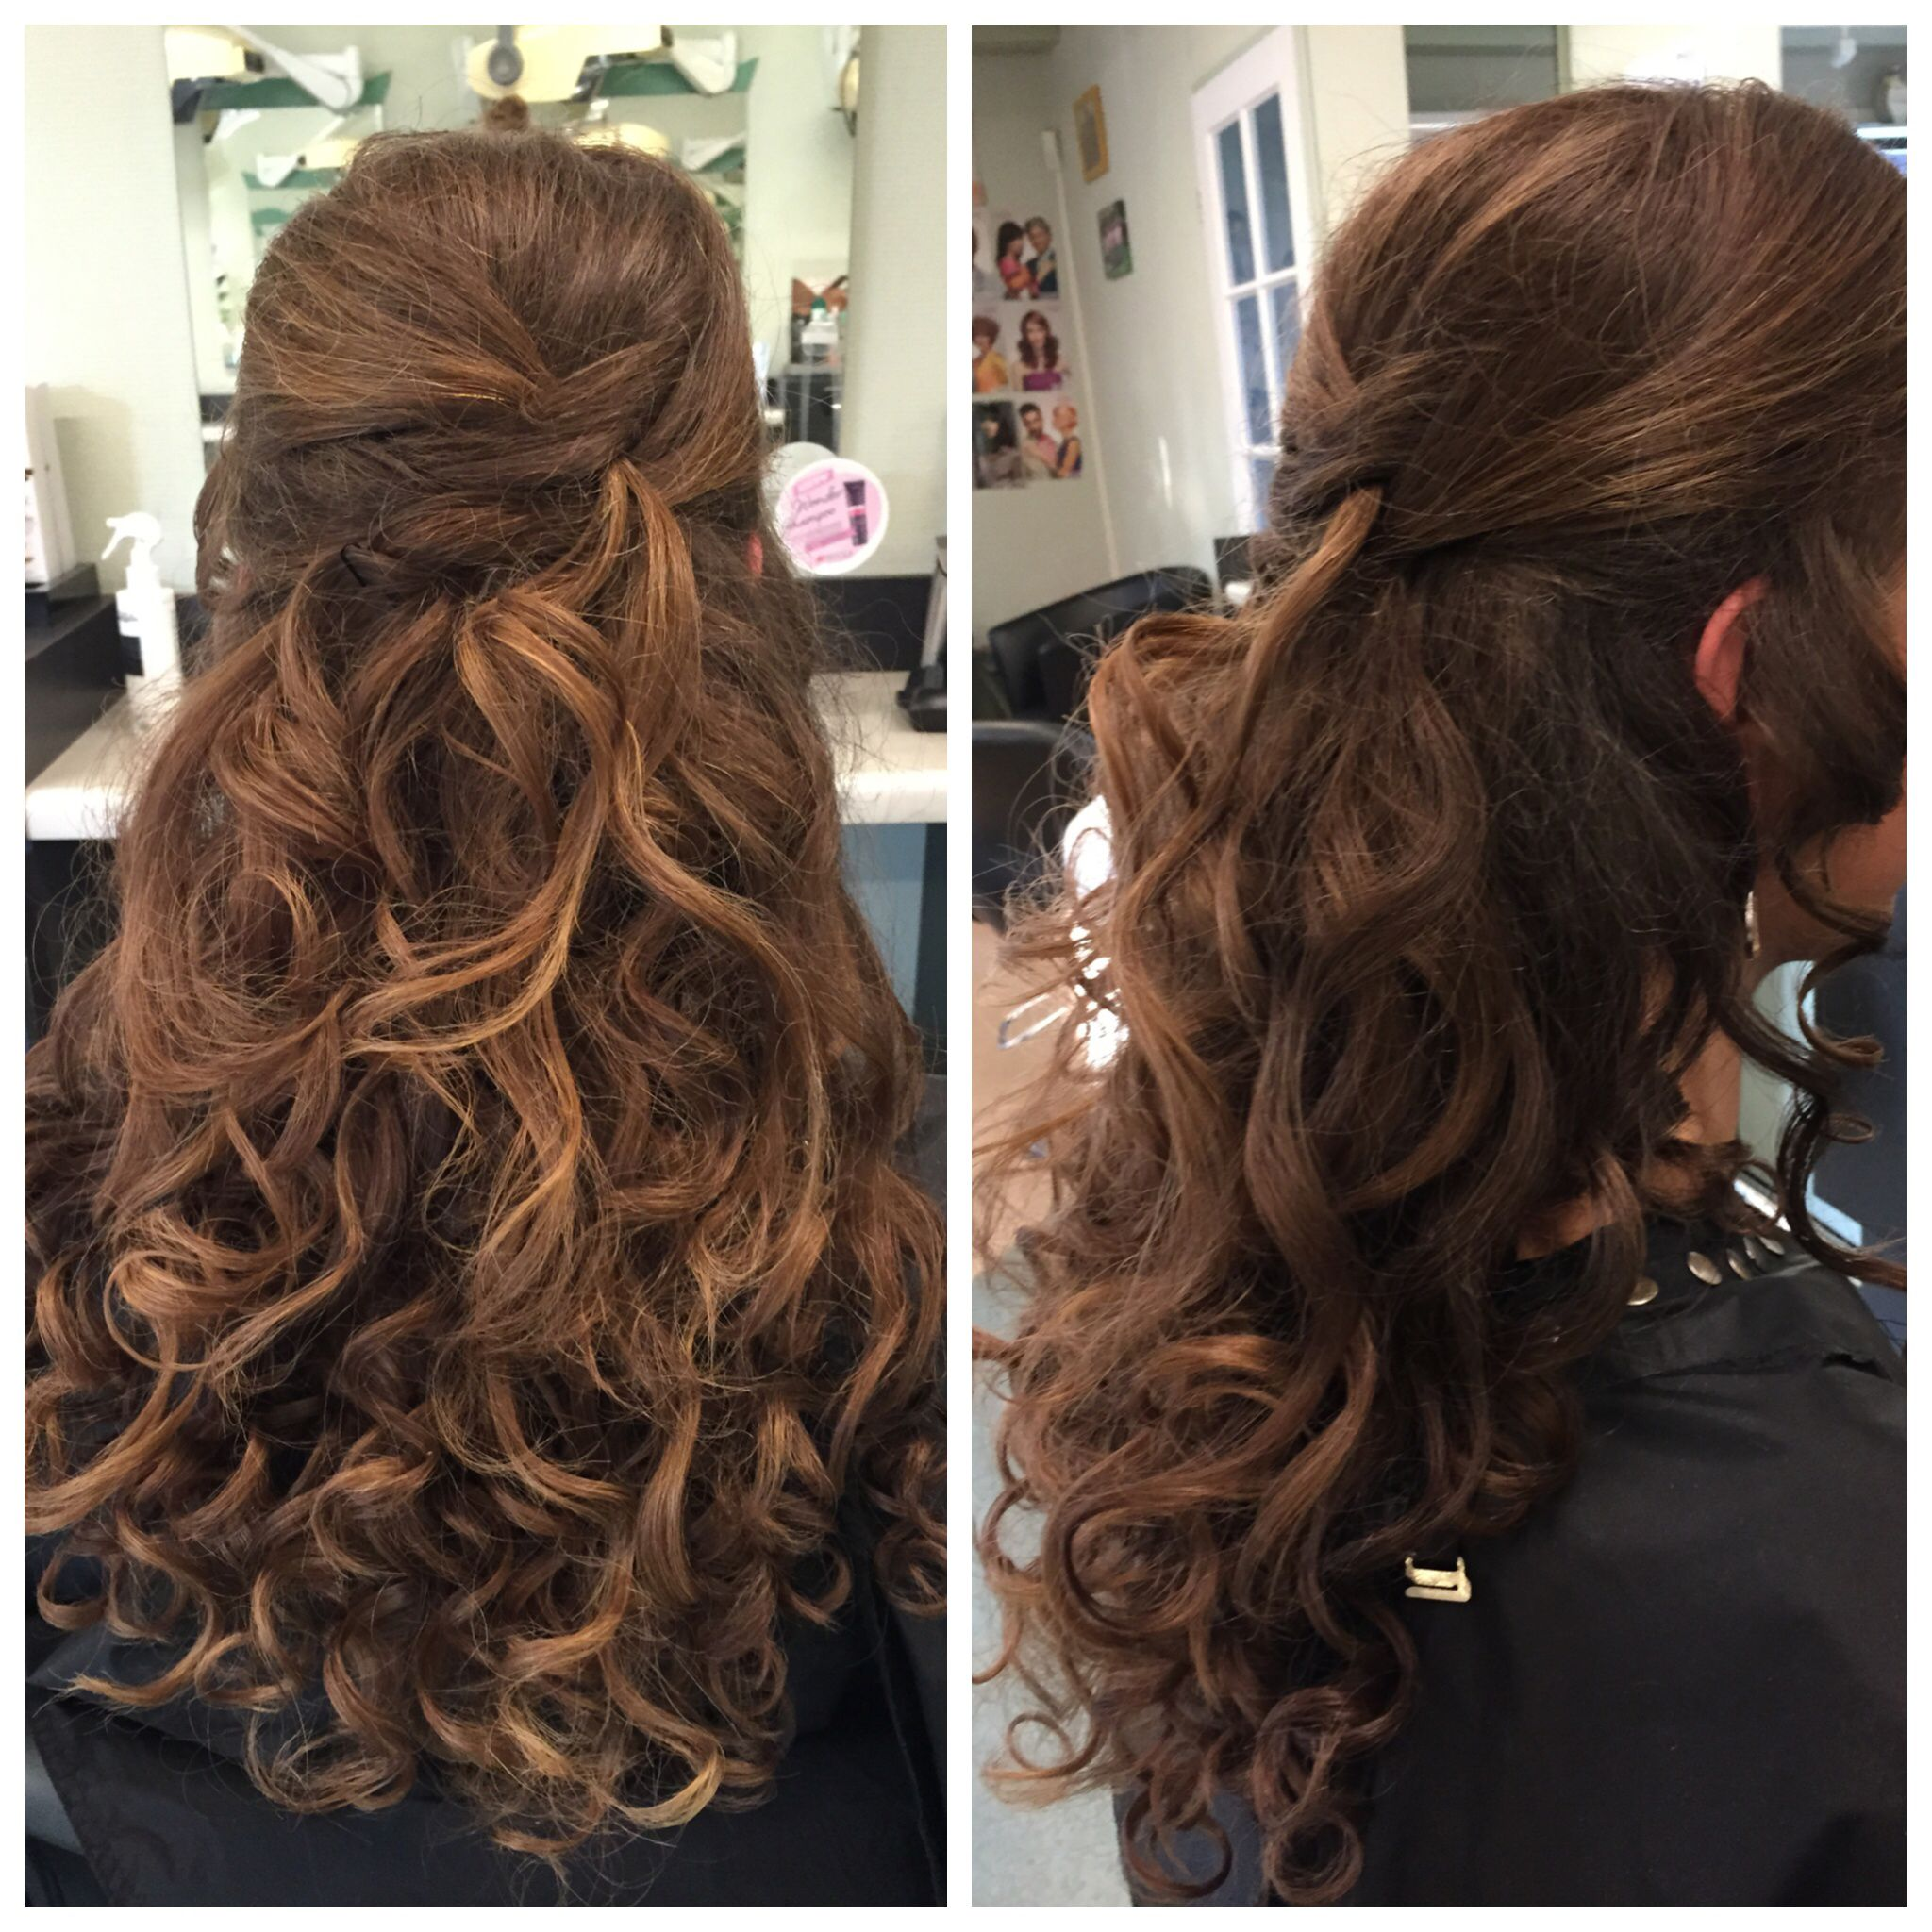 Lang haar met krullen wedding hairstyle pinterest for Blow out karlsruhe